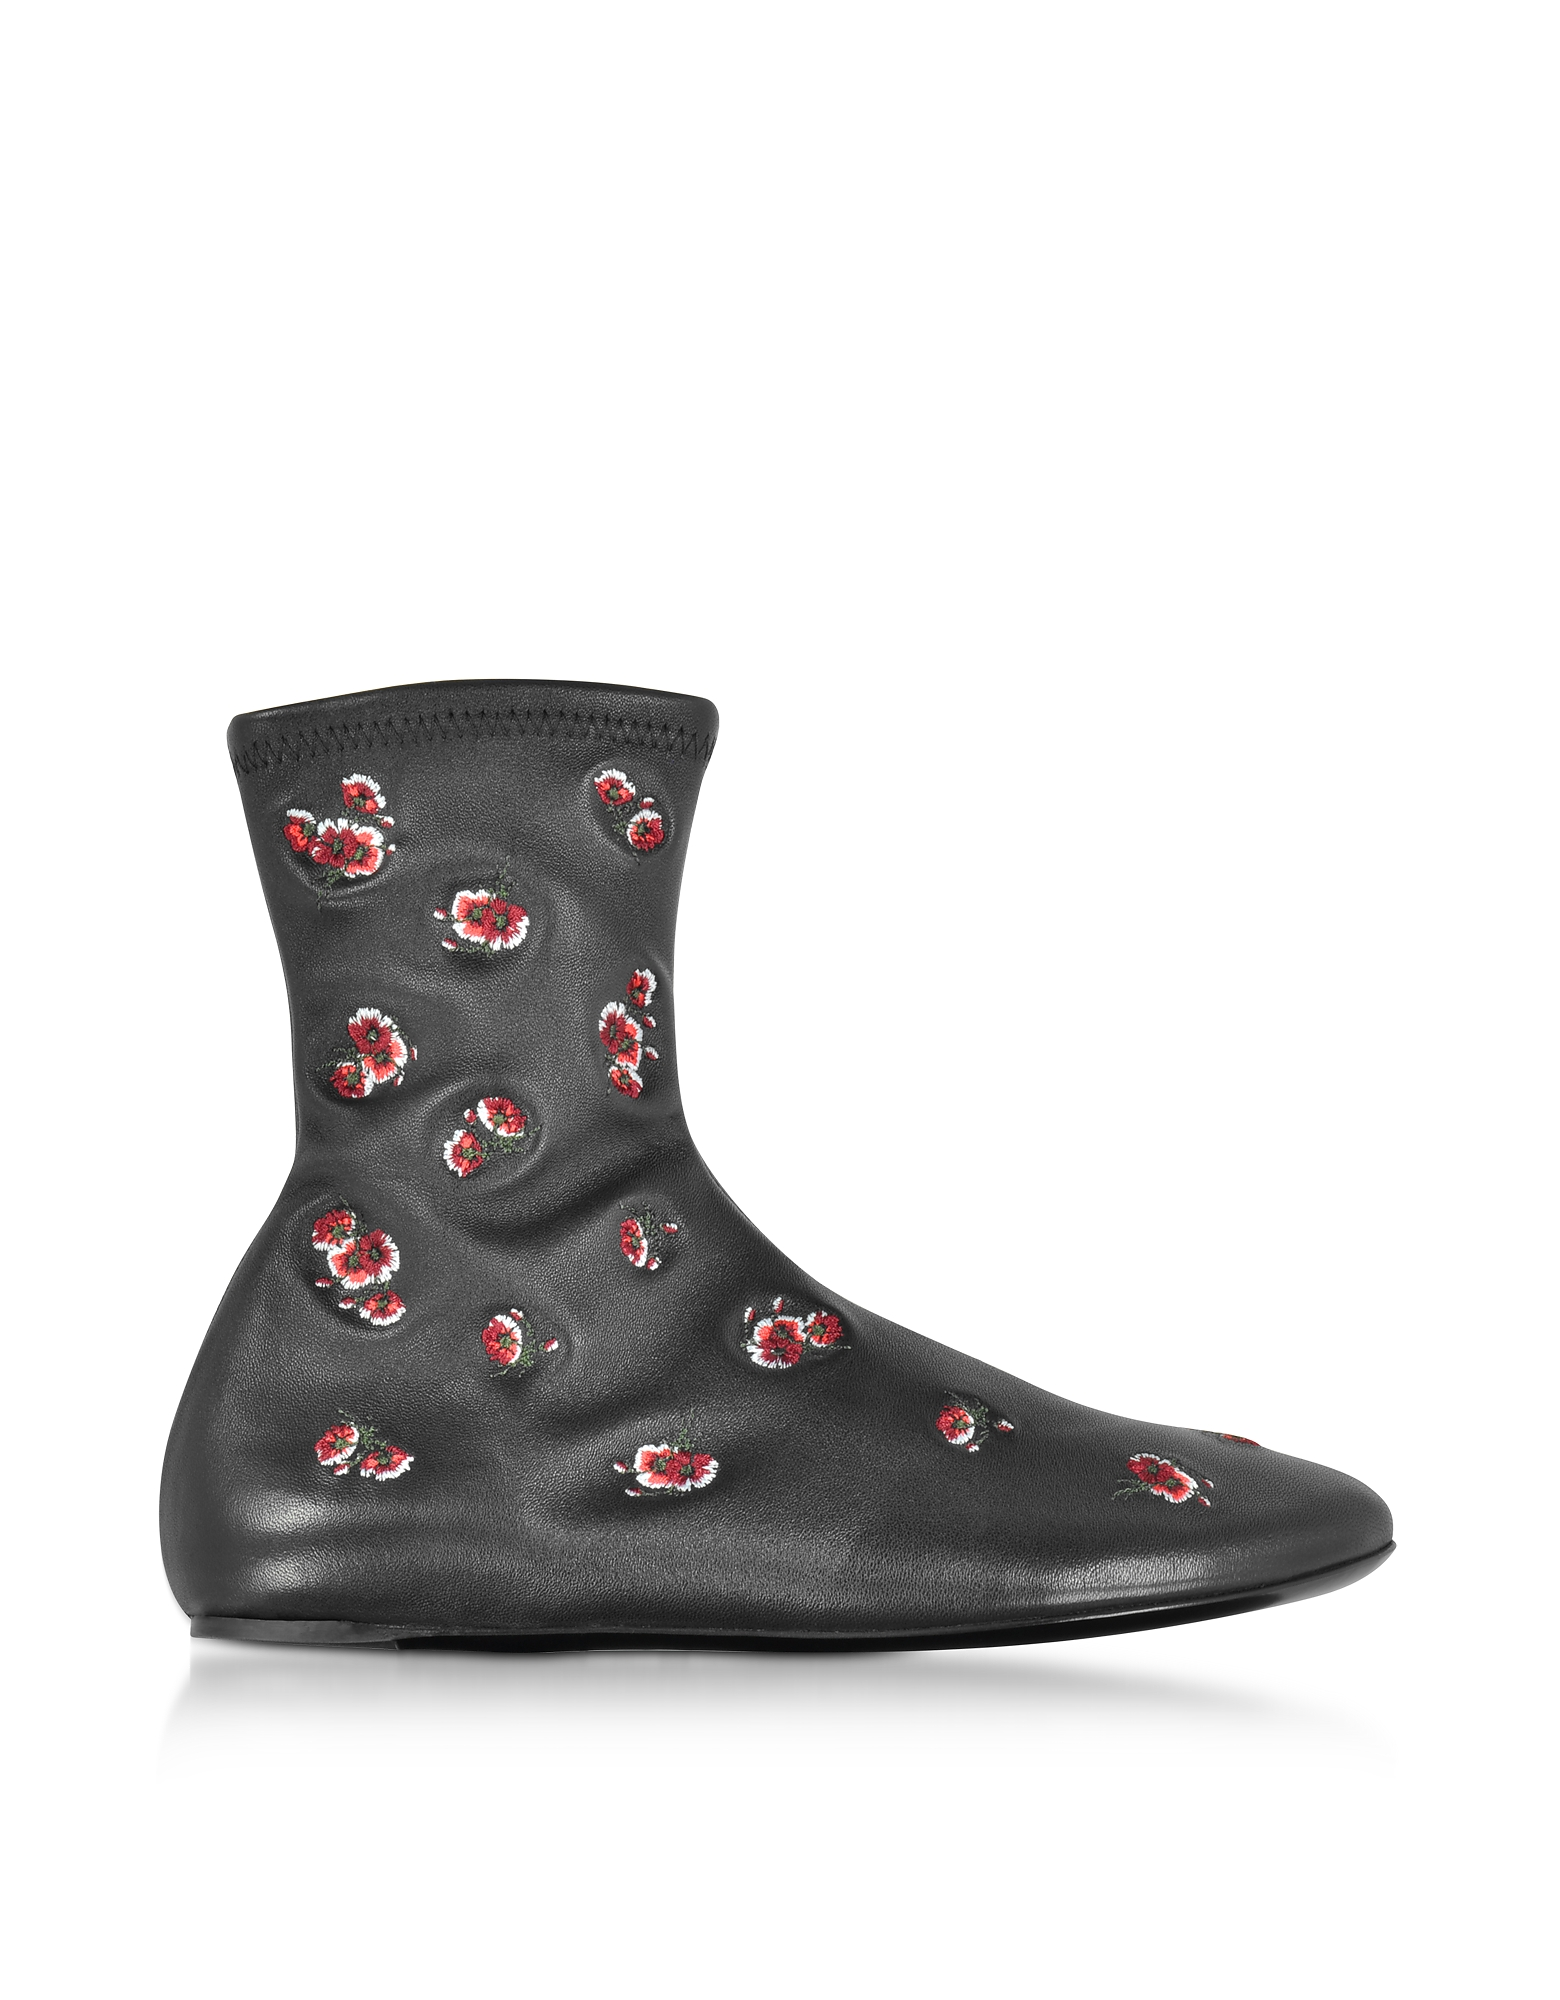 Kenzo Black May Flowers Boots